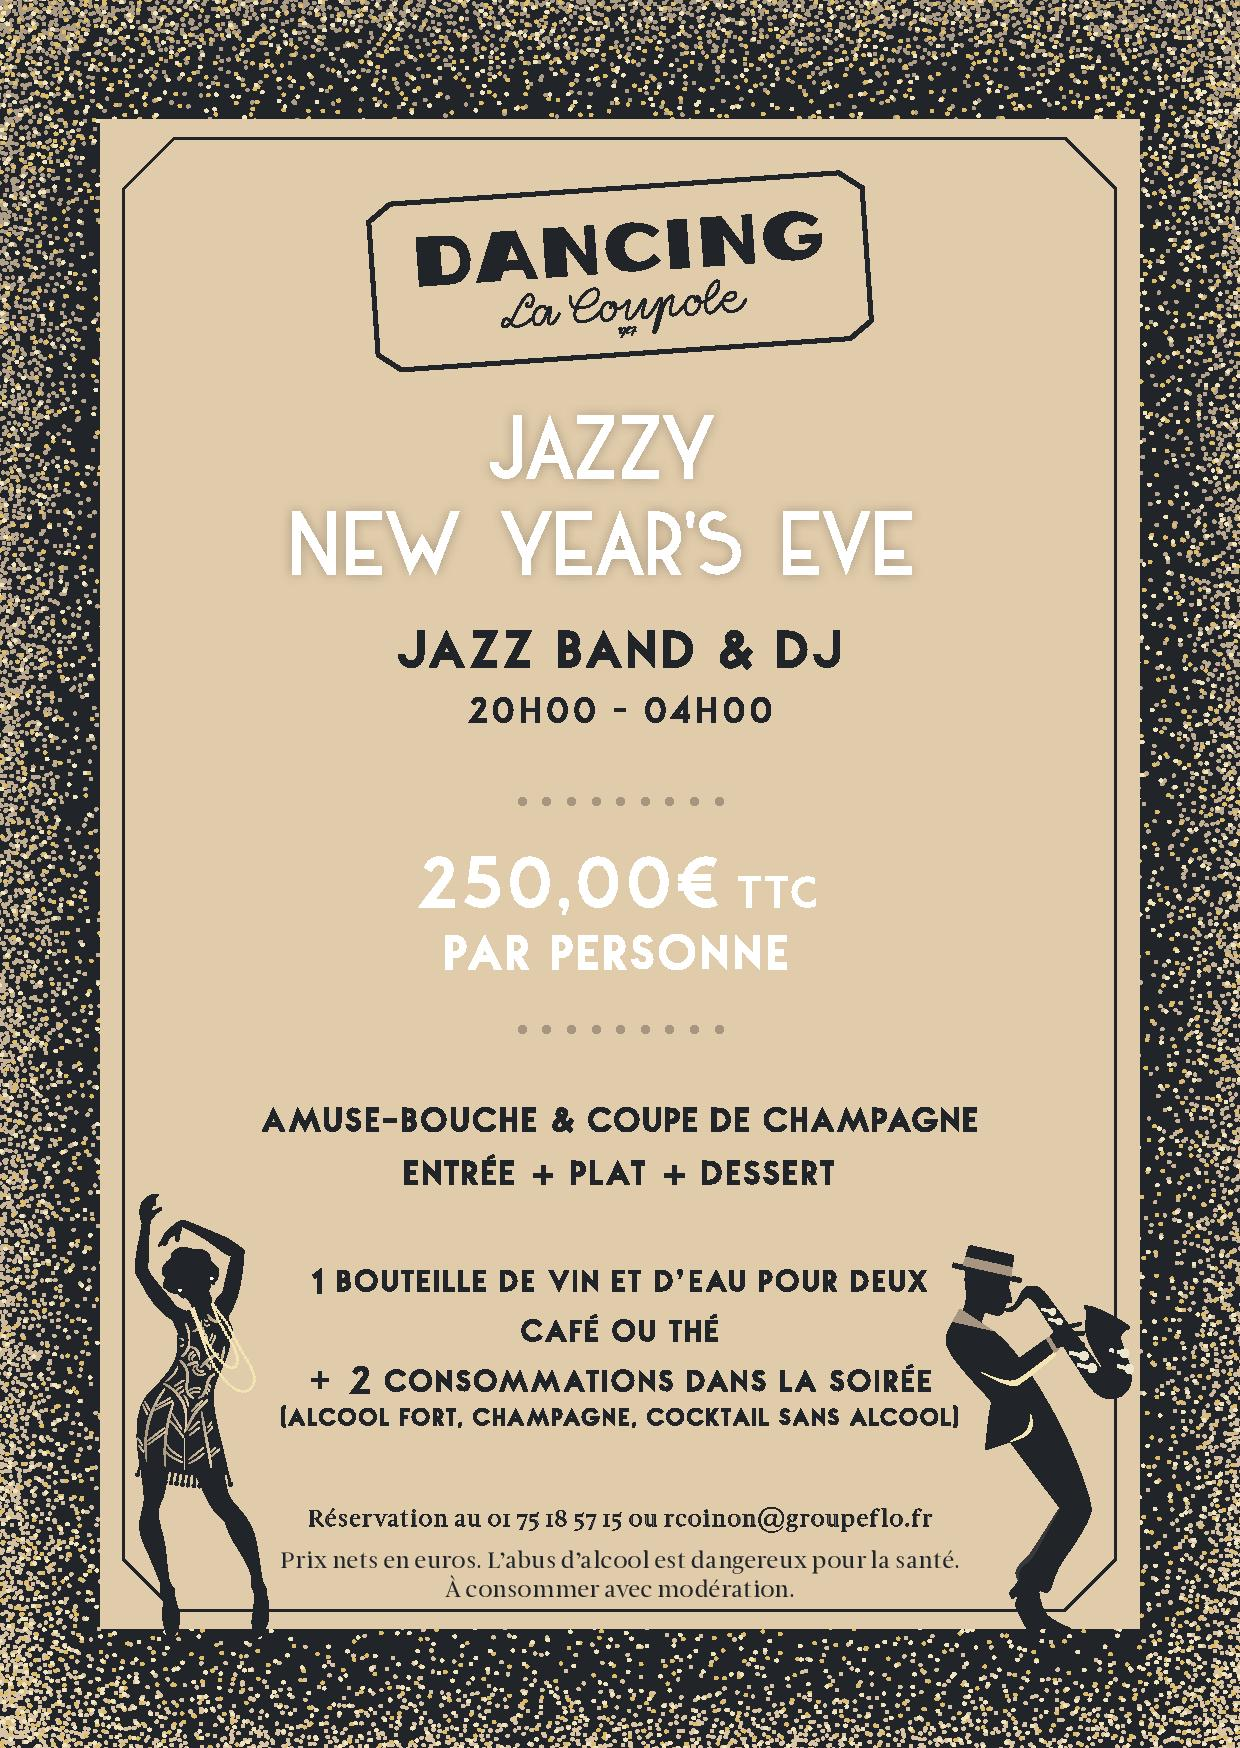 JAZZY NEW YEAR AU DANCING DE LA COUPOLE